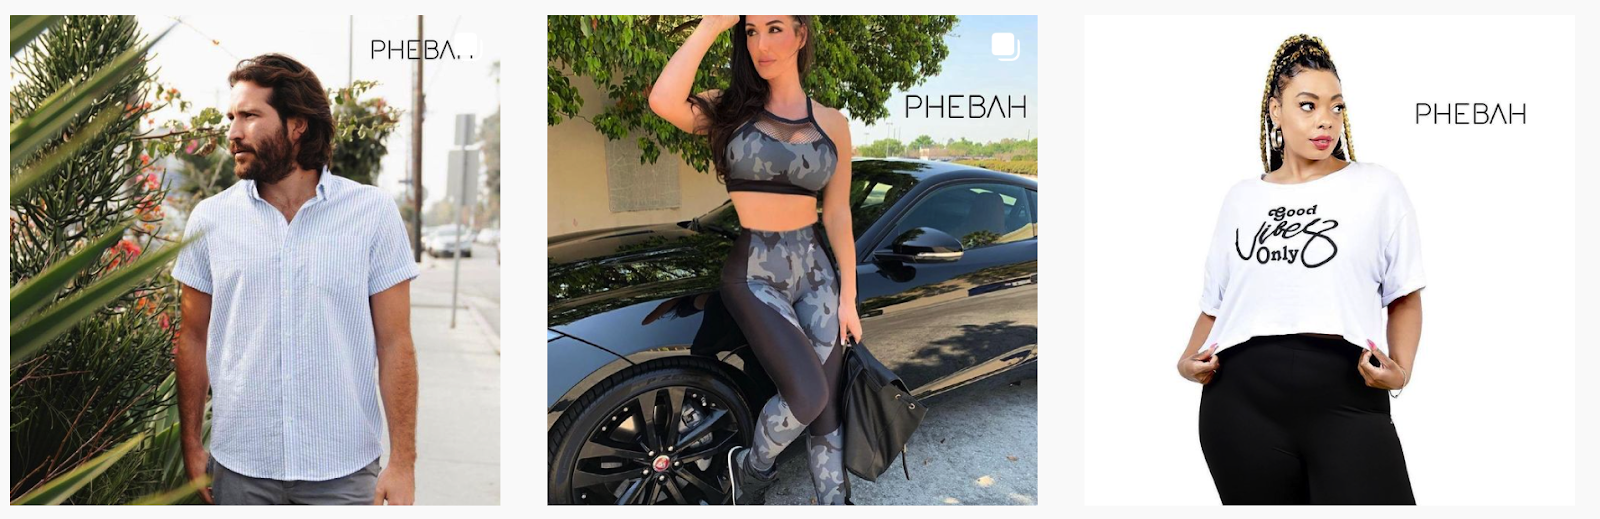 Phebah | Casual wear, Sports wear collection | Fashion Brands Featured on Afluencer